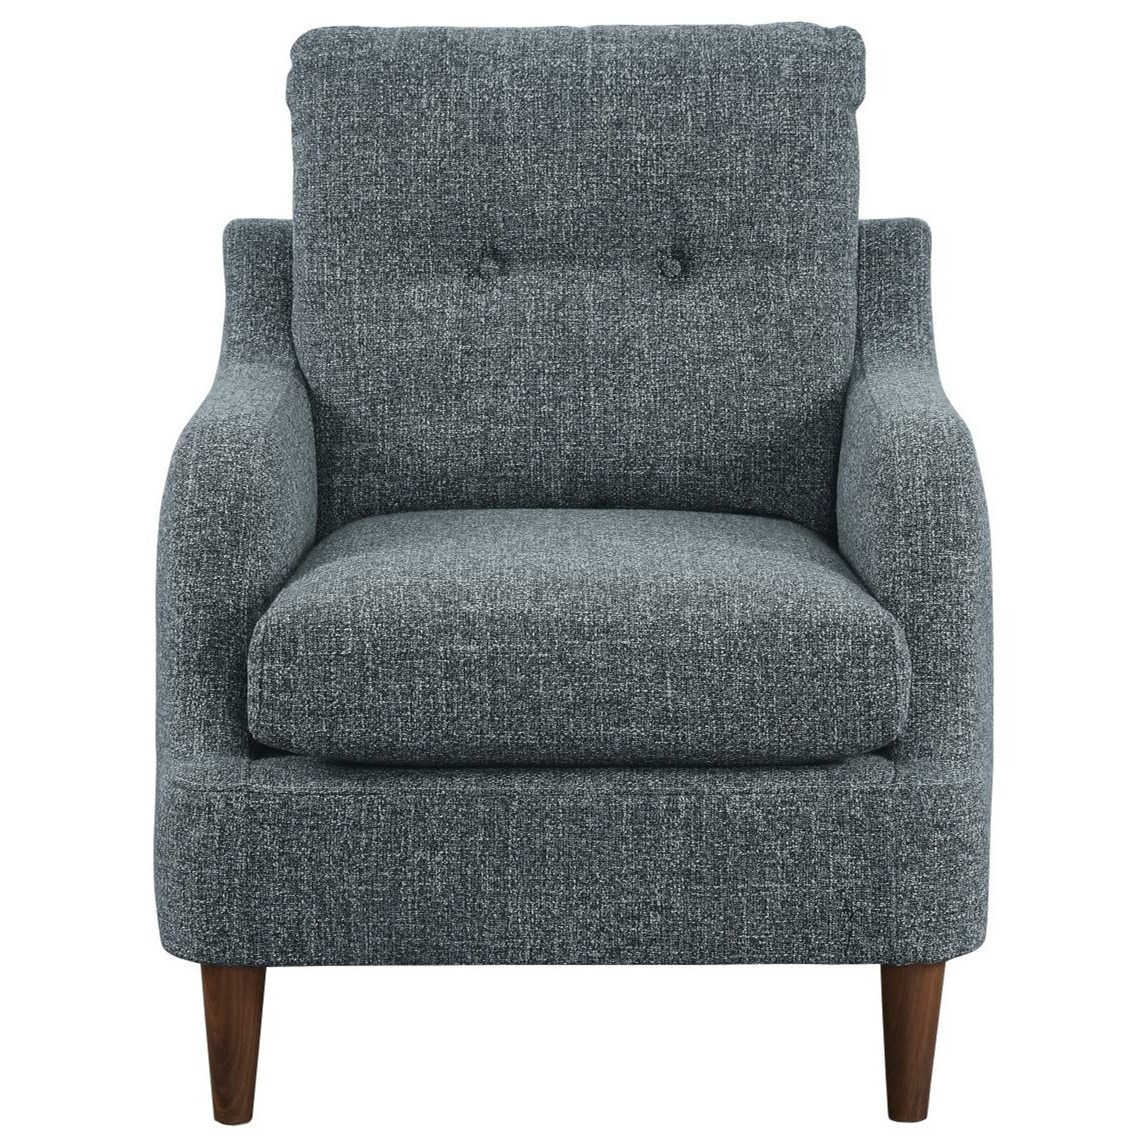 homelegance cagle accent chair value city furniture On cagle furniture